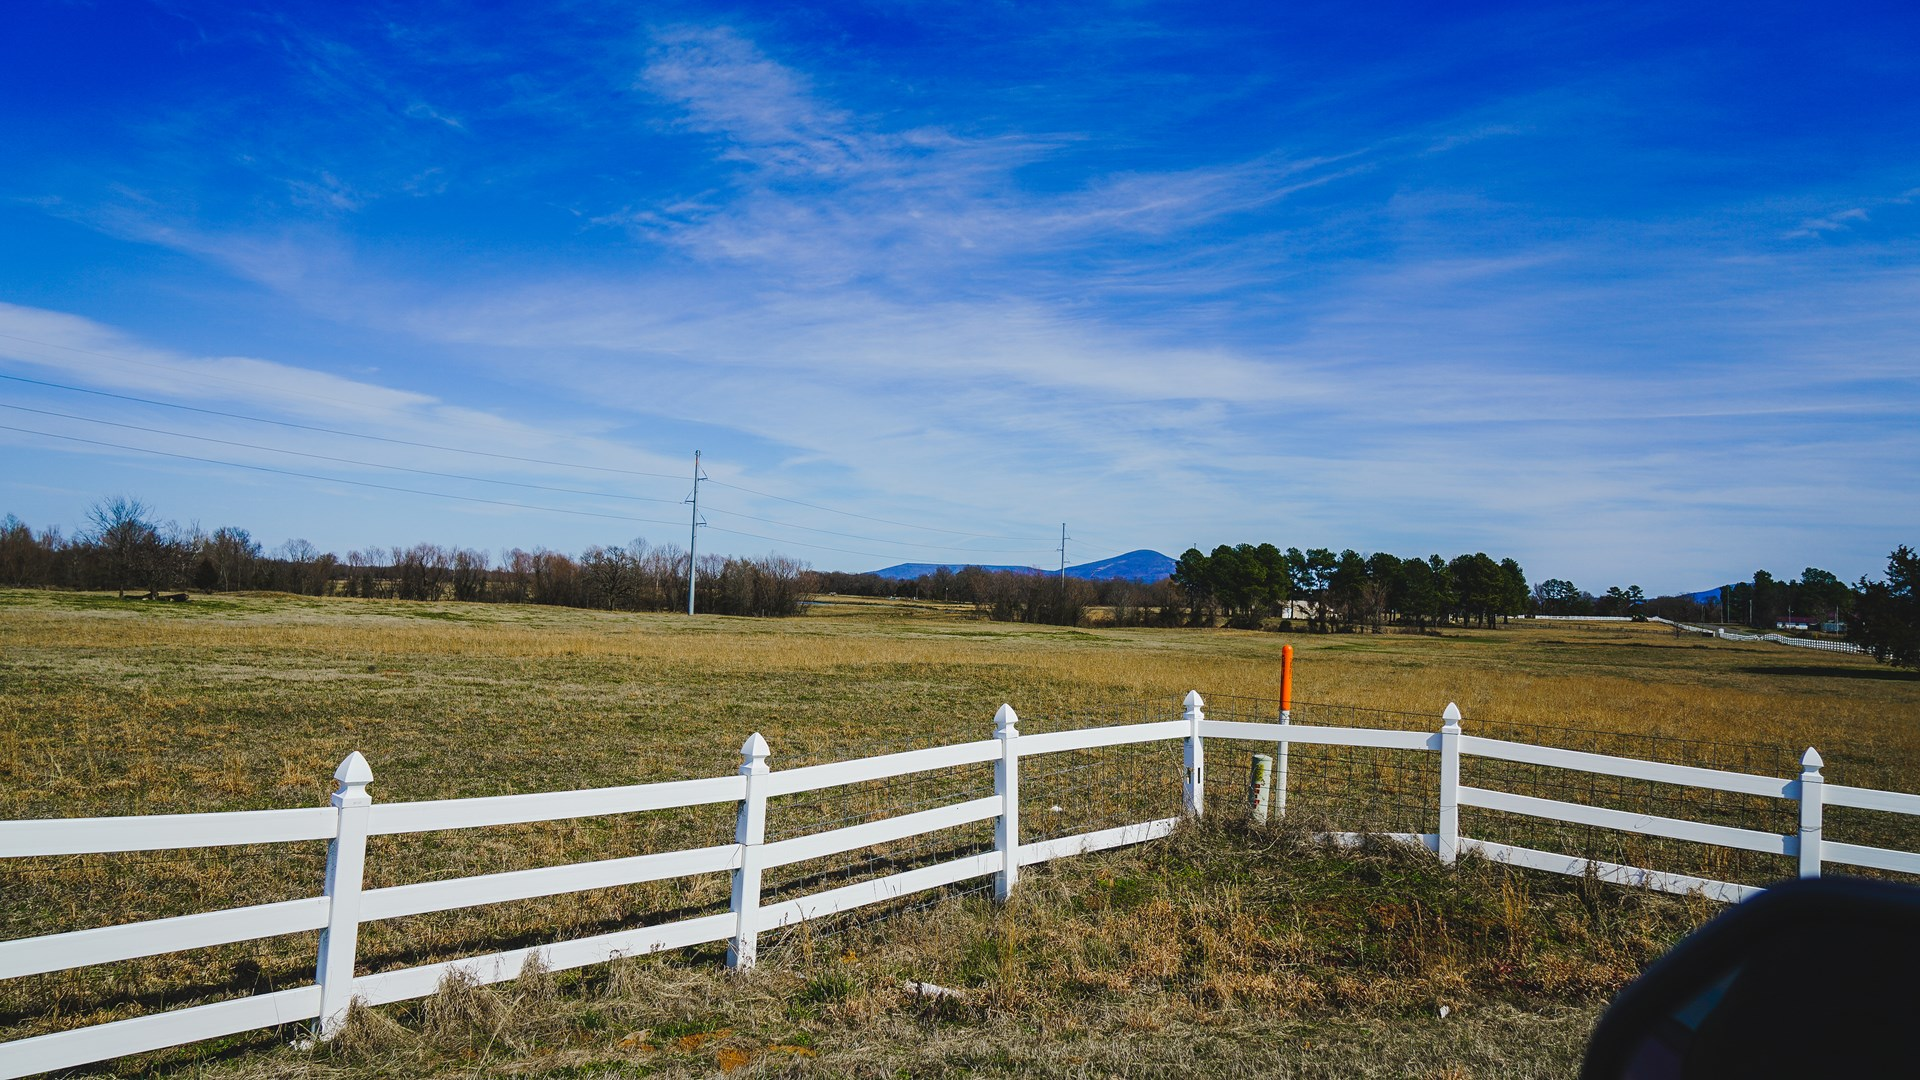 LAND FOR SALE IN HOWE, OK